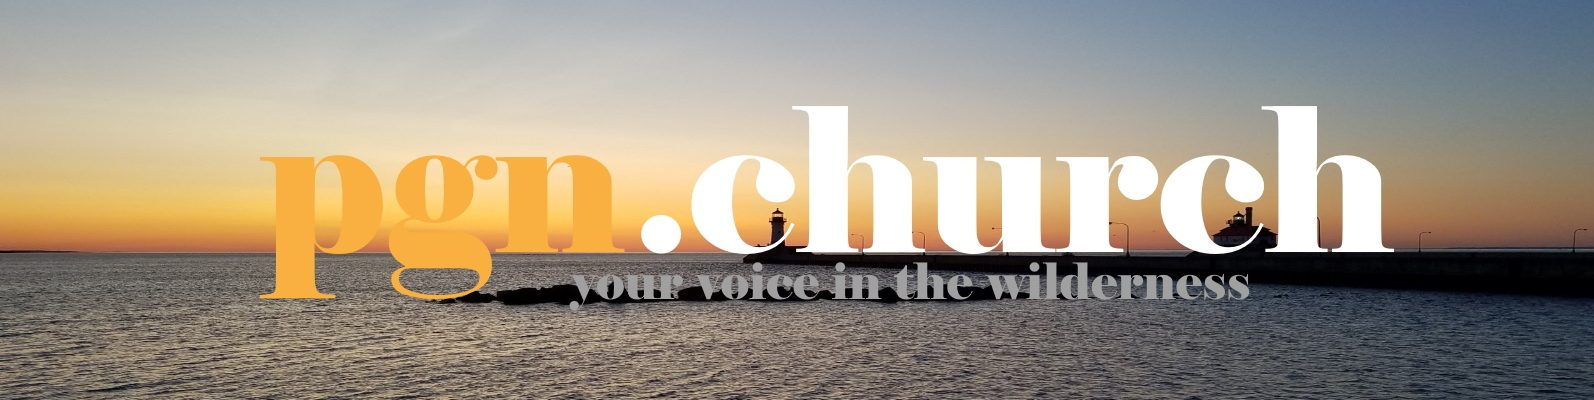 pgn.church your voice in the wilderness